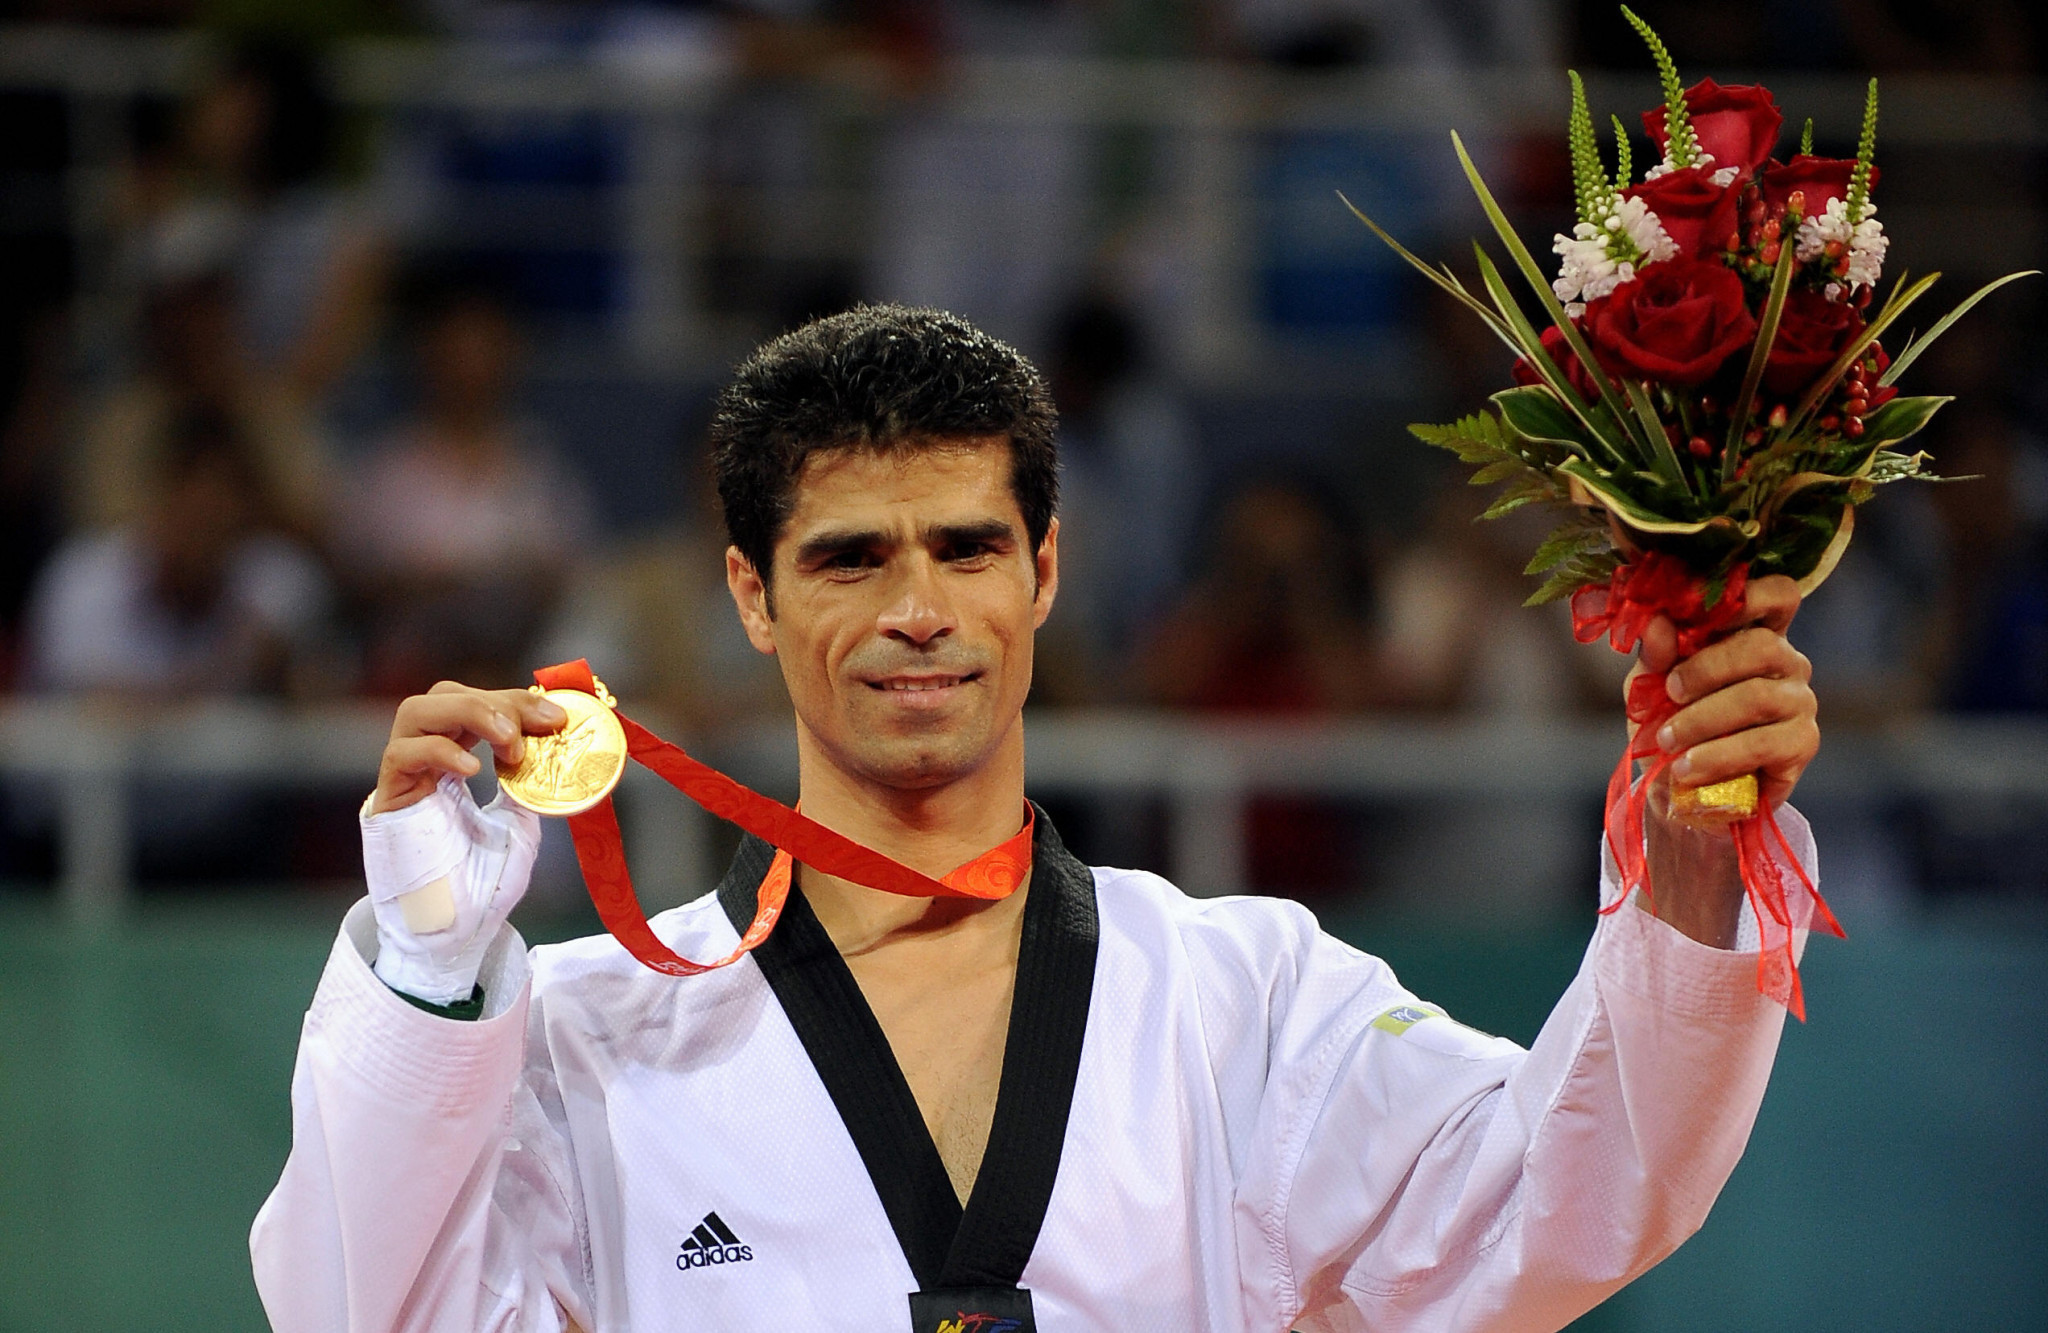 Iran's most decorated Olympian Saei steps down as taekwondo technical director